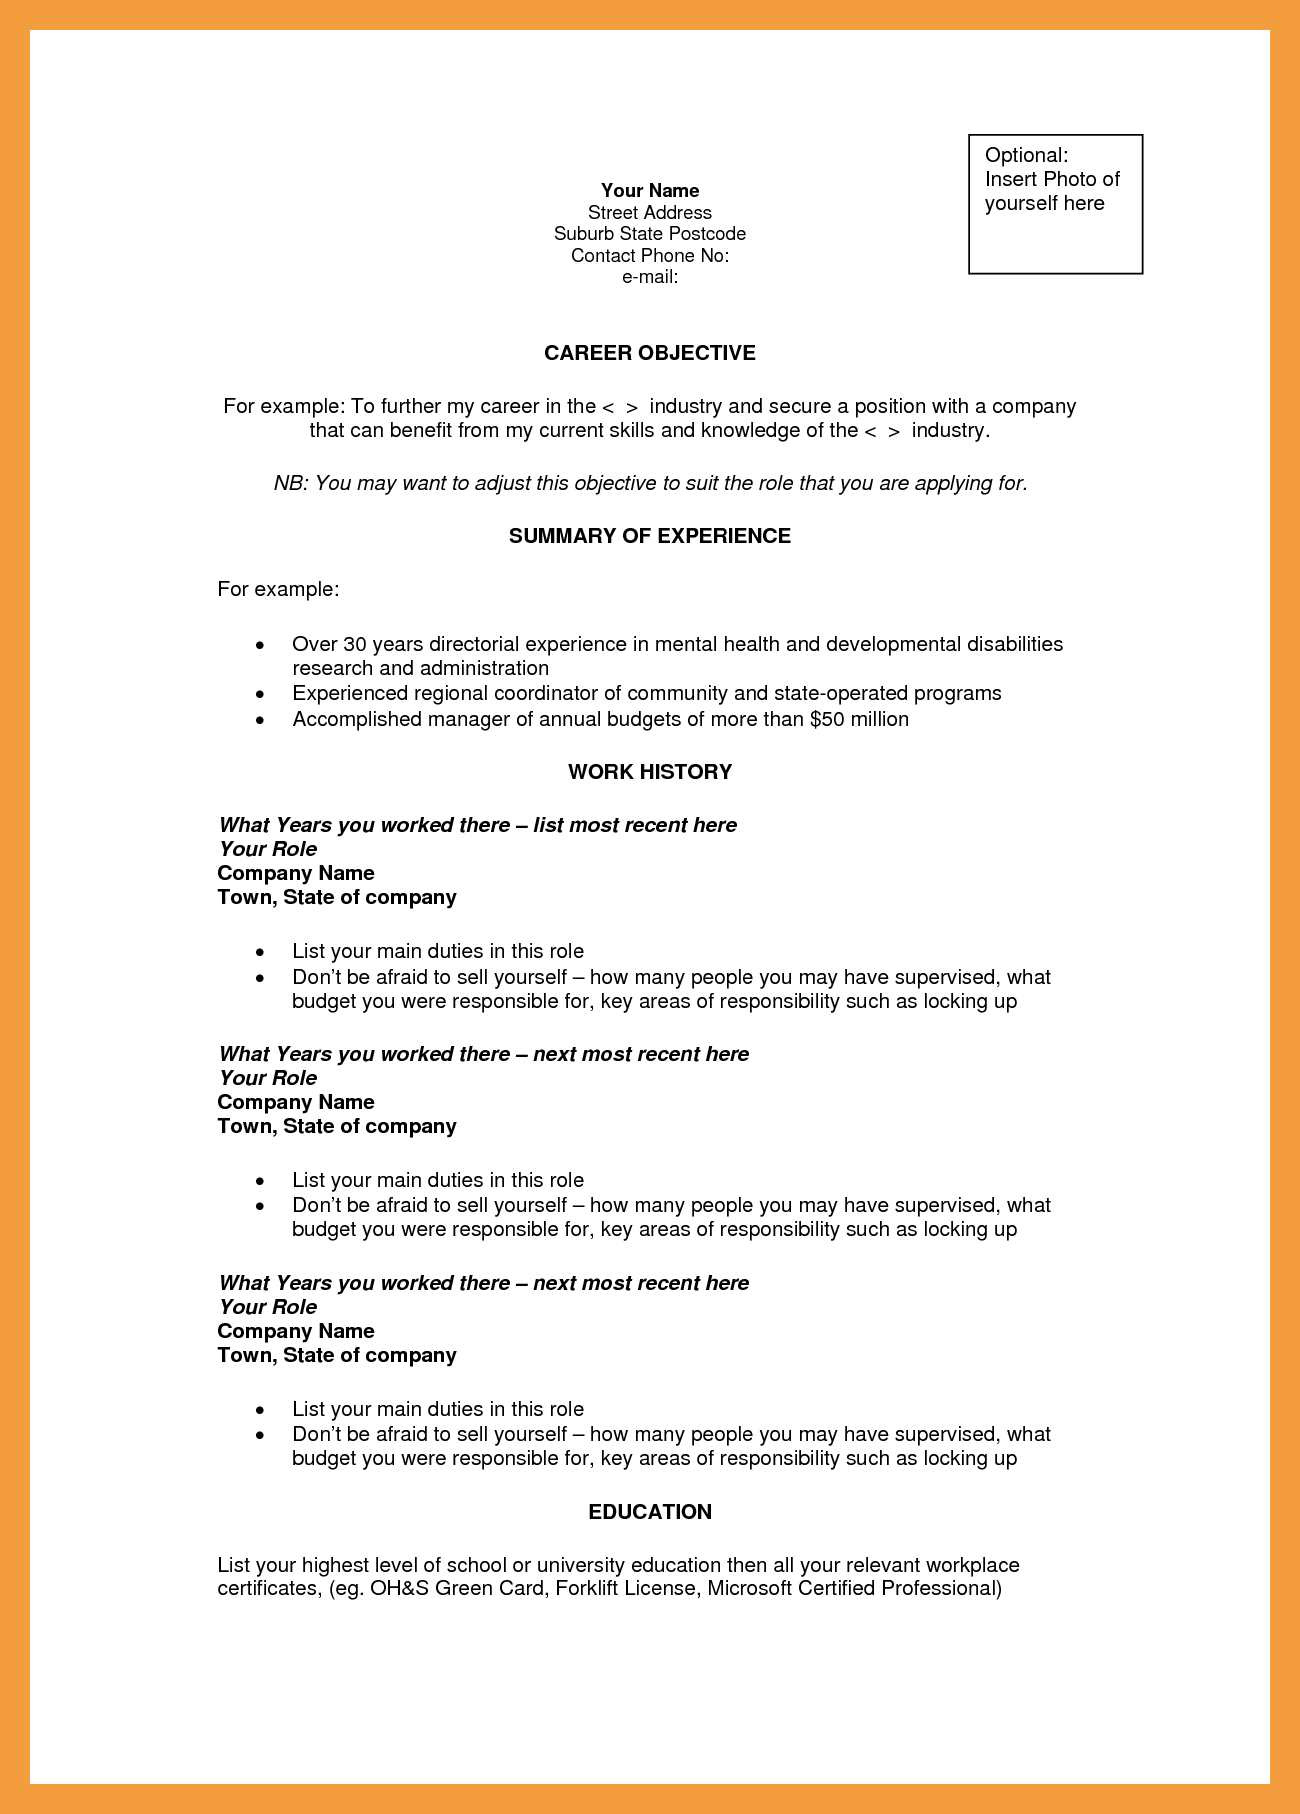 Resume Objective Examples  General Resumejective Template Examples For Any Career Proven Tips